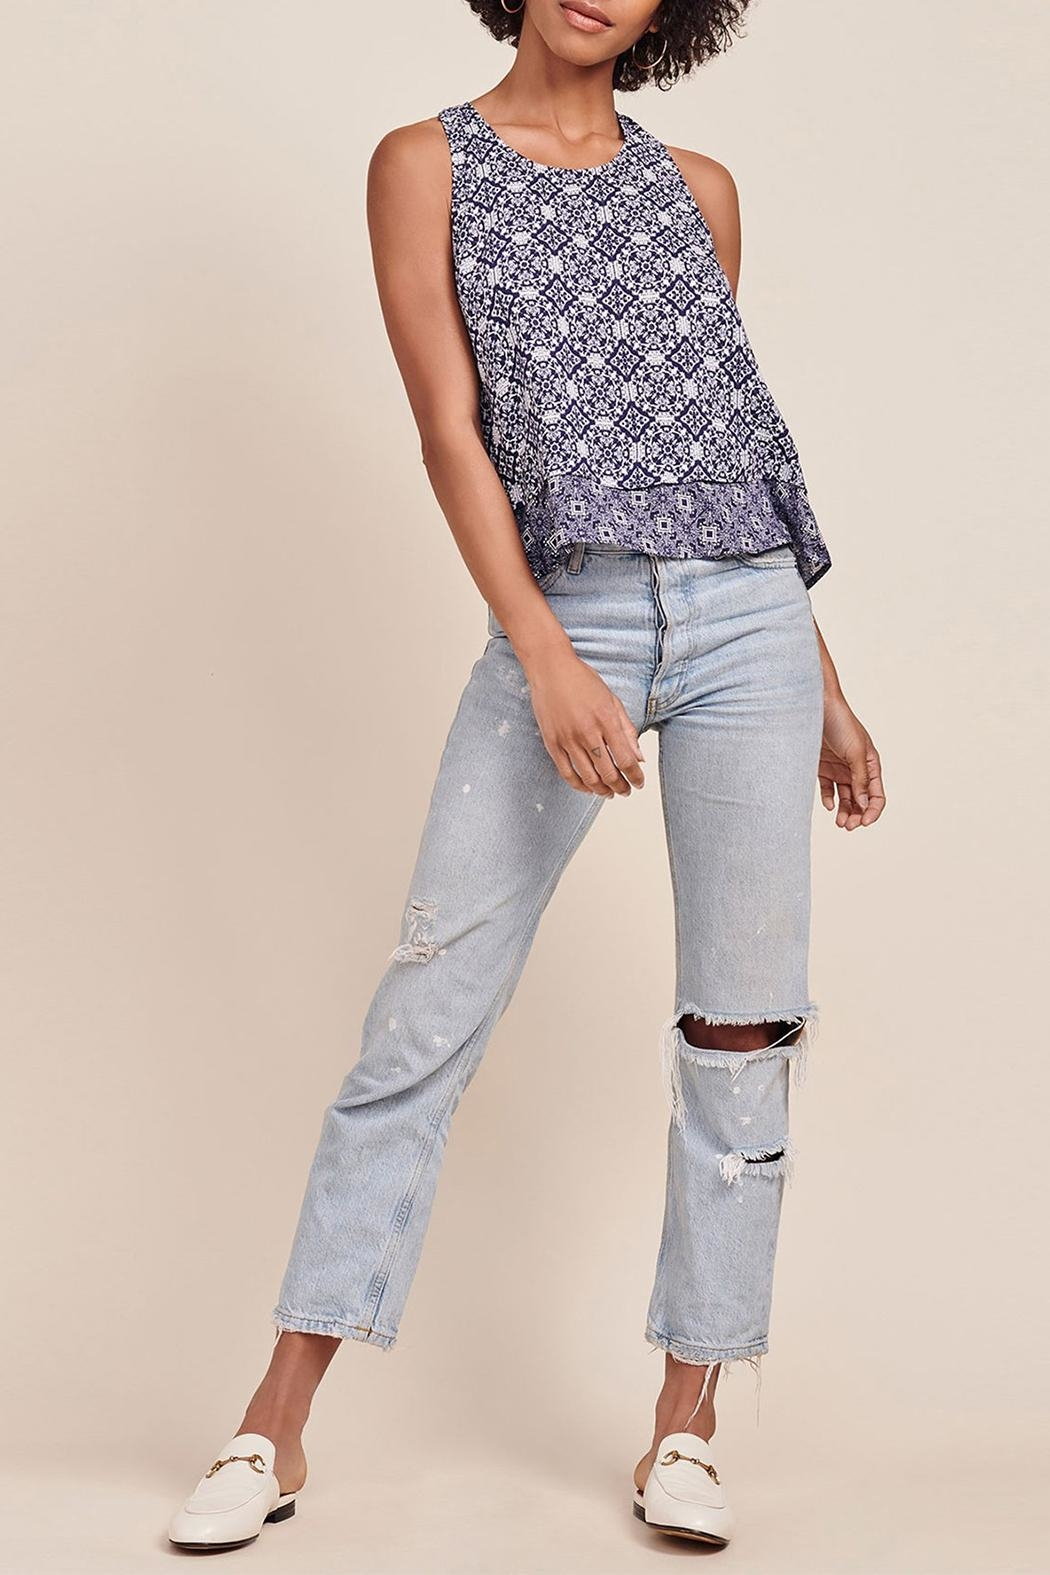 Jack by BB Dakota Kinley Printed Top - Front Cropped Image